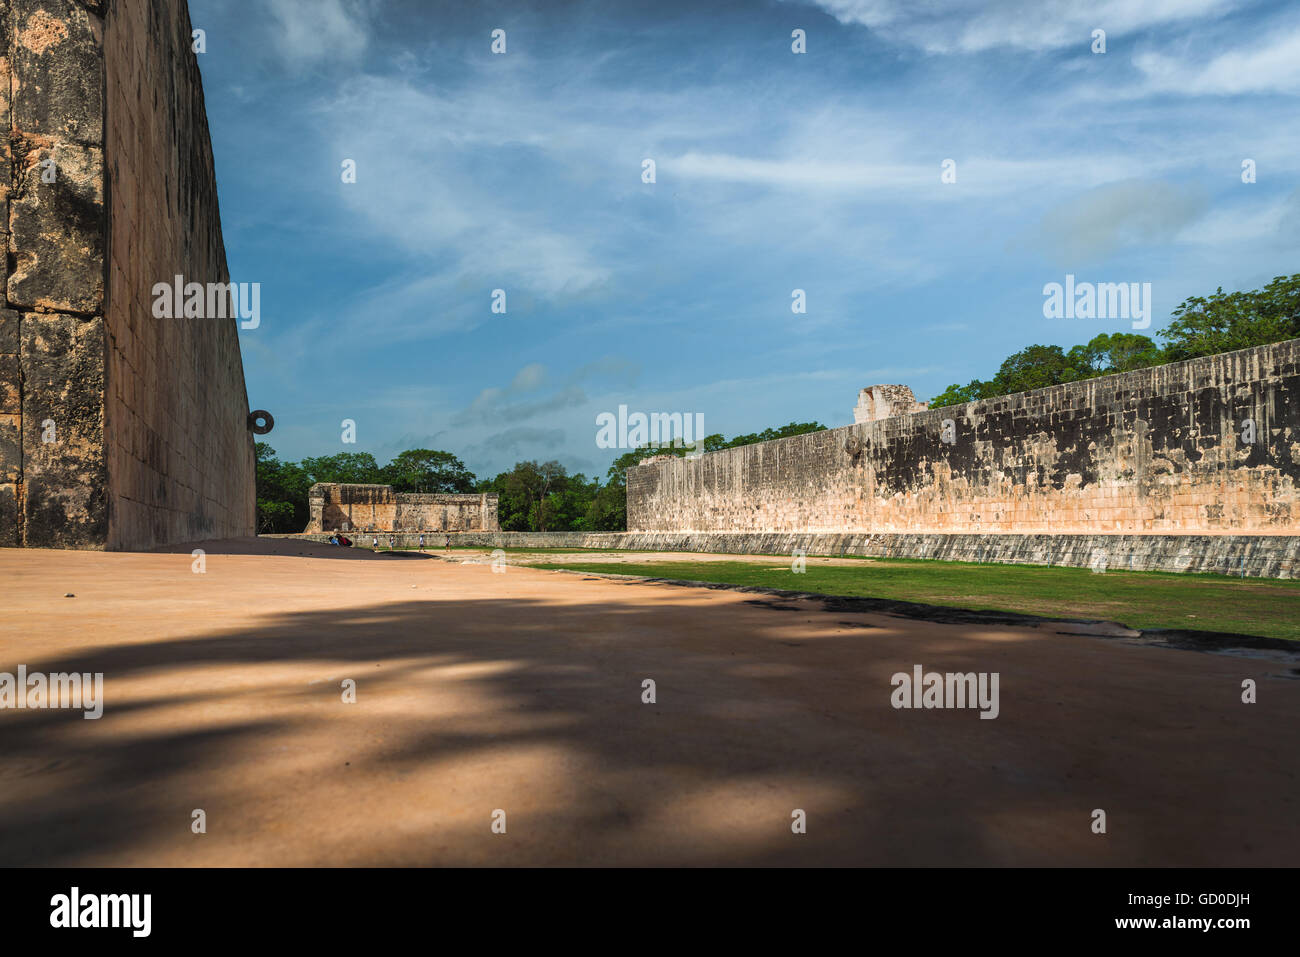 The Great Ballcourt at the Mayan ruins of Chichen Itza, Mexico. - Stock Image